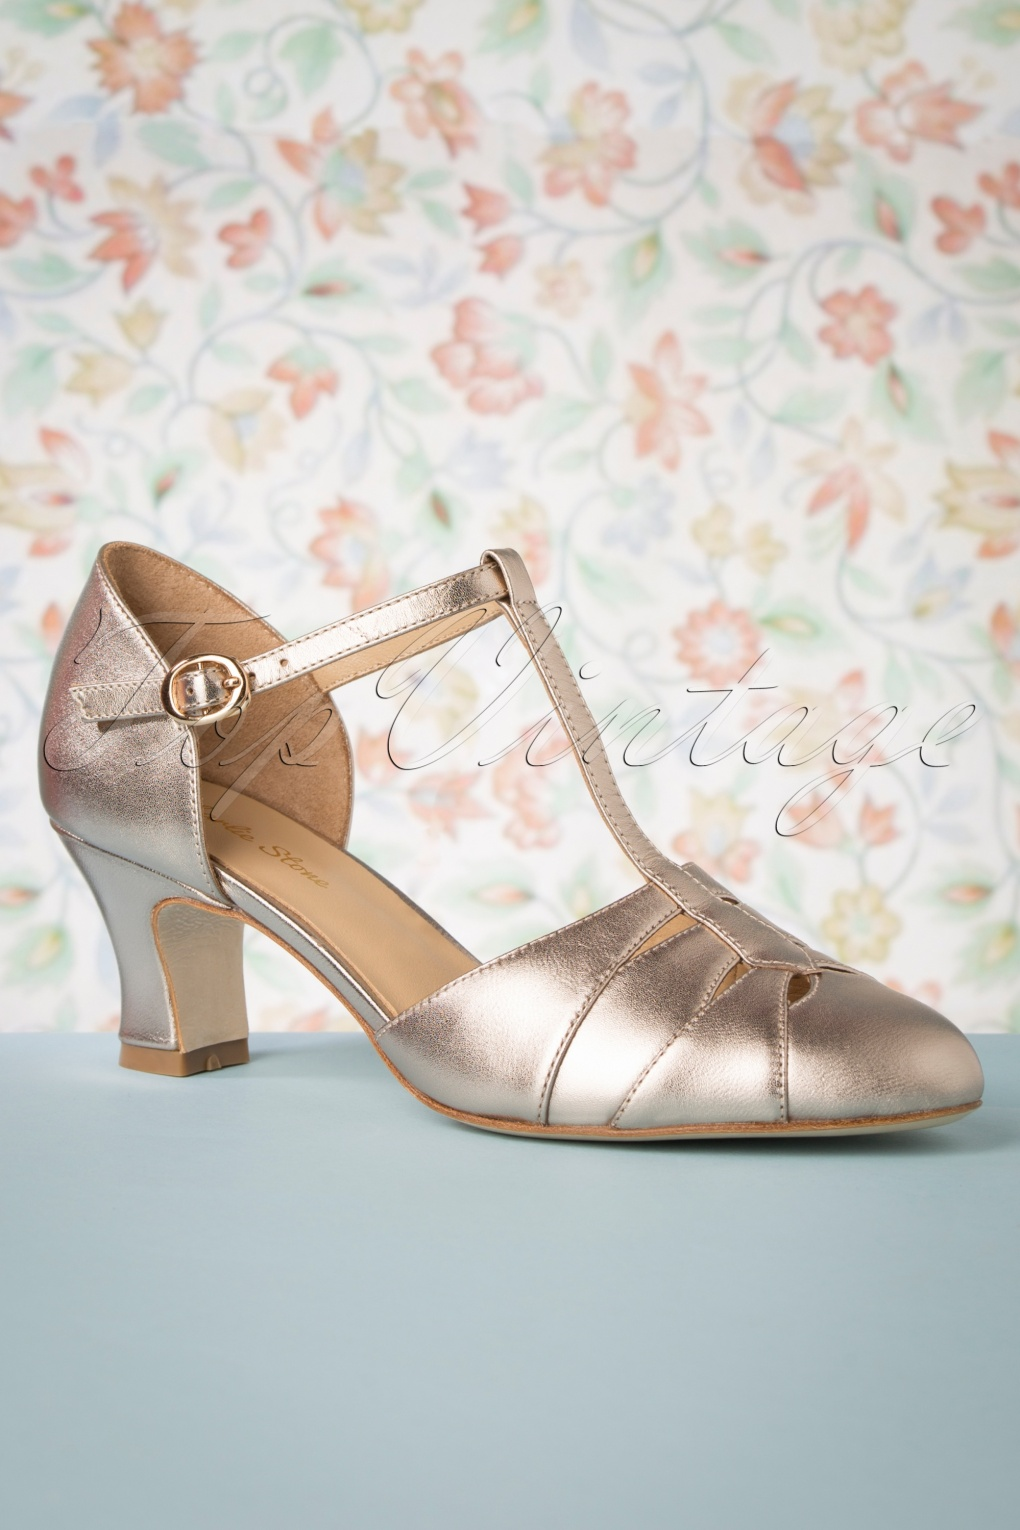 50s Dresses UK | 1950s Dresses, Shoes & Clothing Shops 50s Monaco T-Strap Pumps in French Champagne £140.56 AT vintagedancer.com